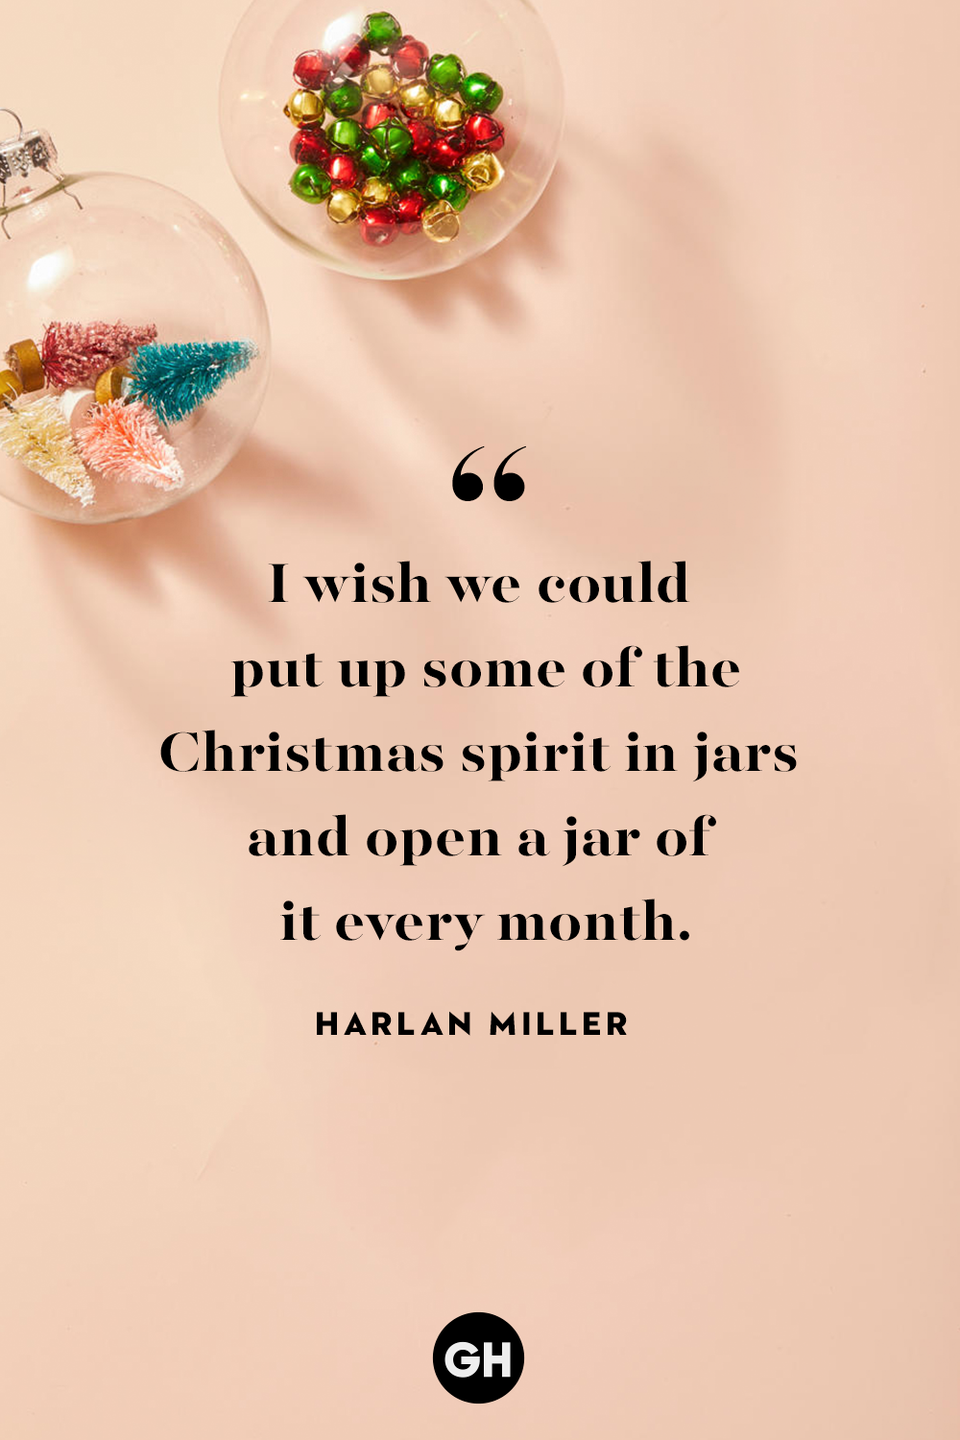 <p>I wish we could put up some of the Christmas spirit in jars and open a jar of it every month. </p>